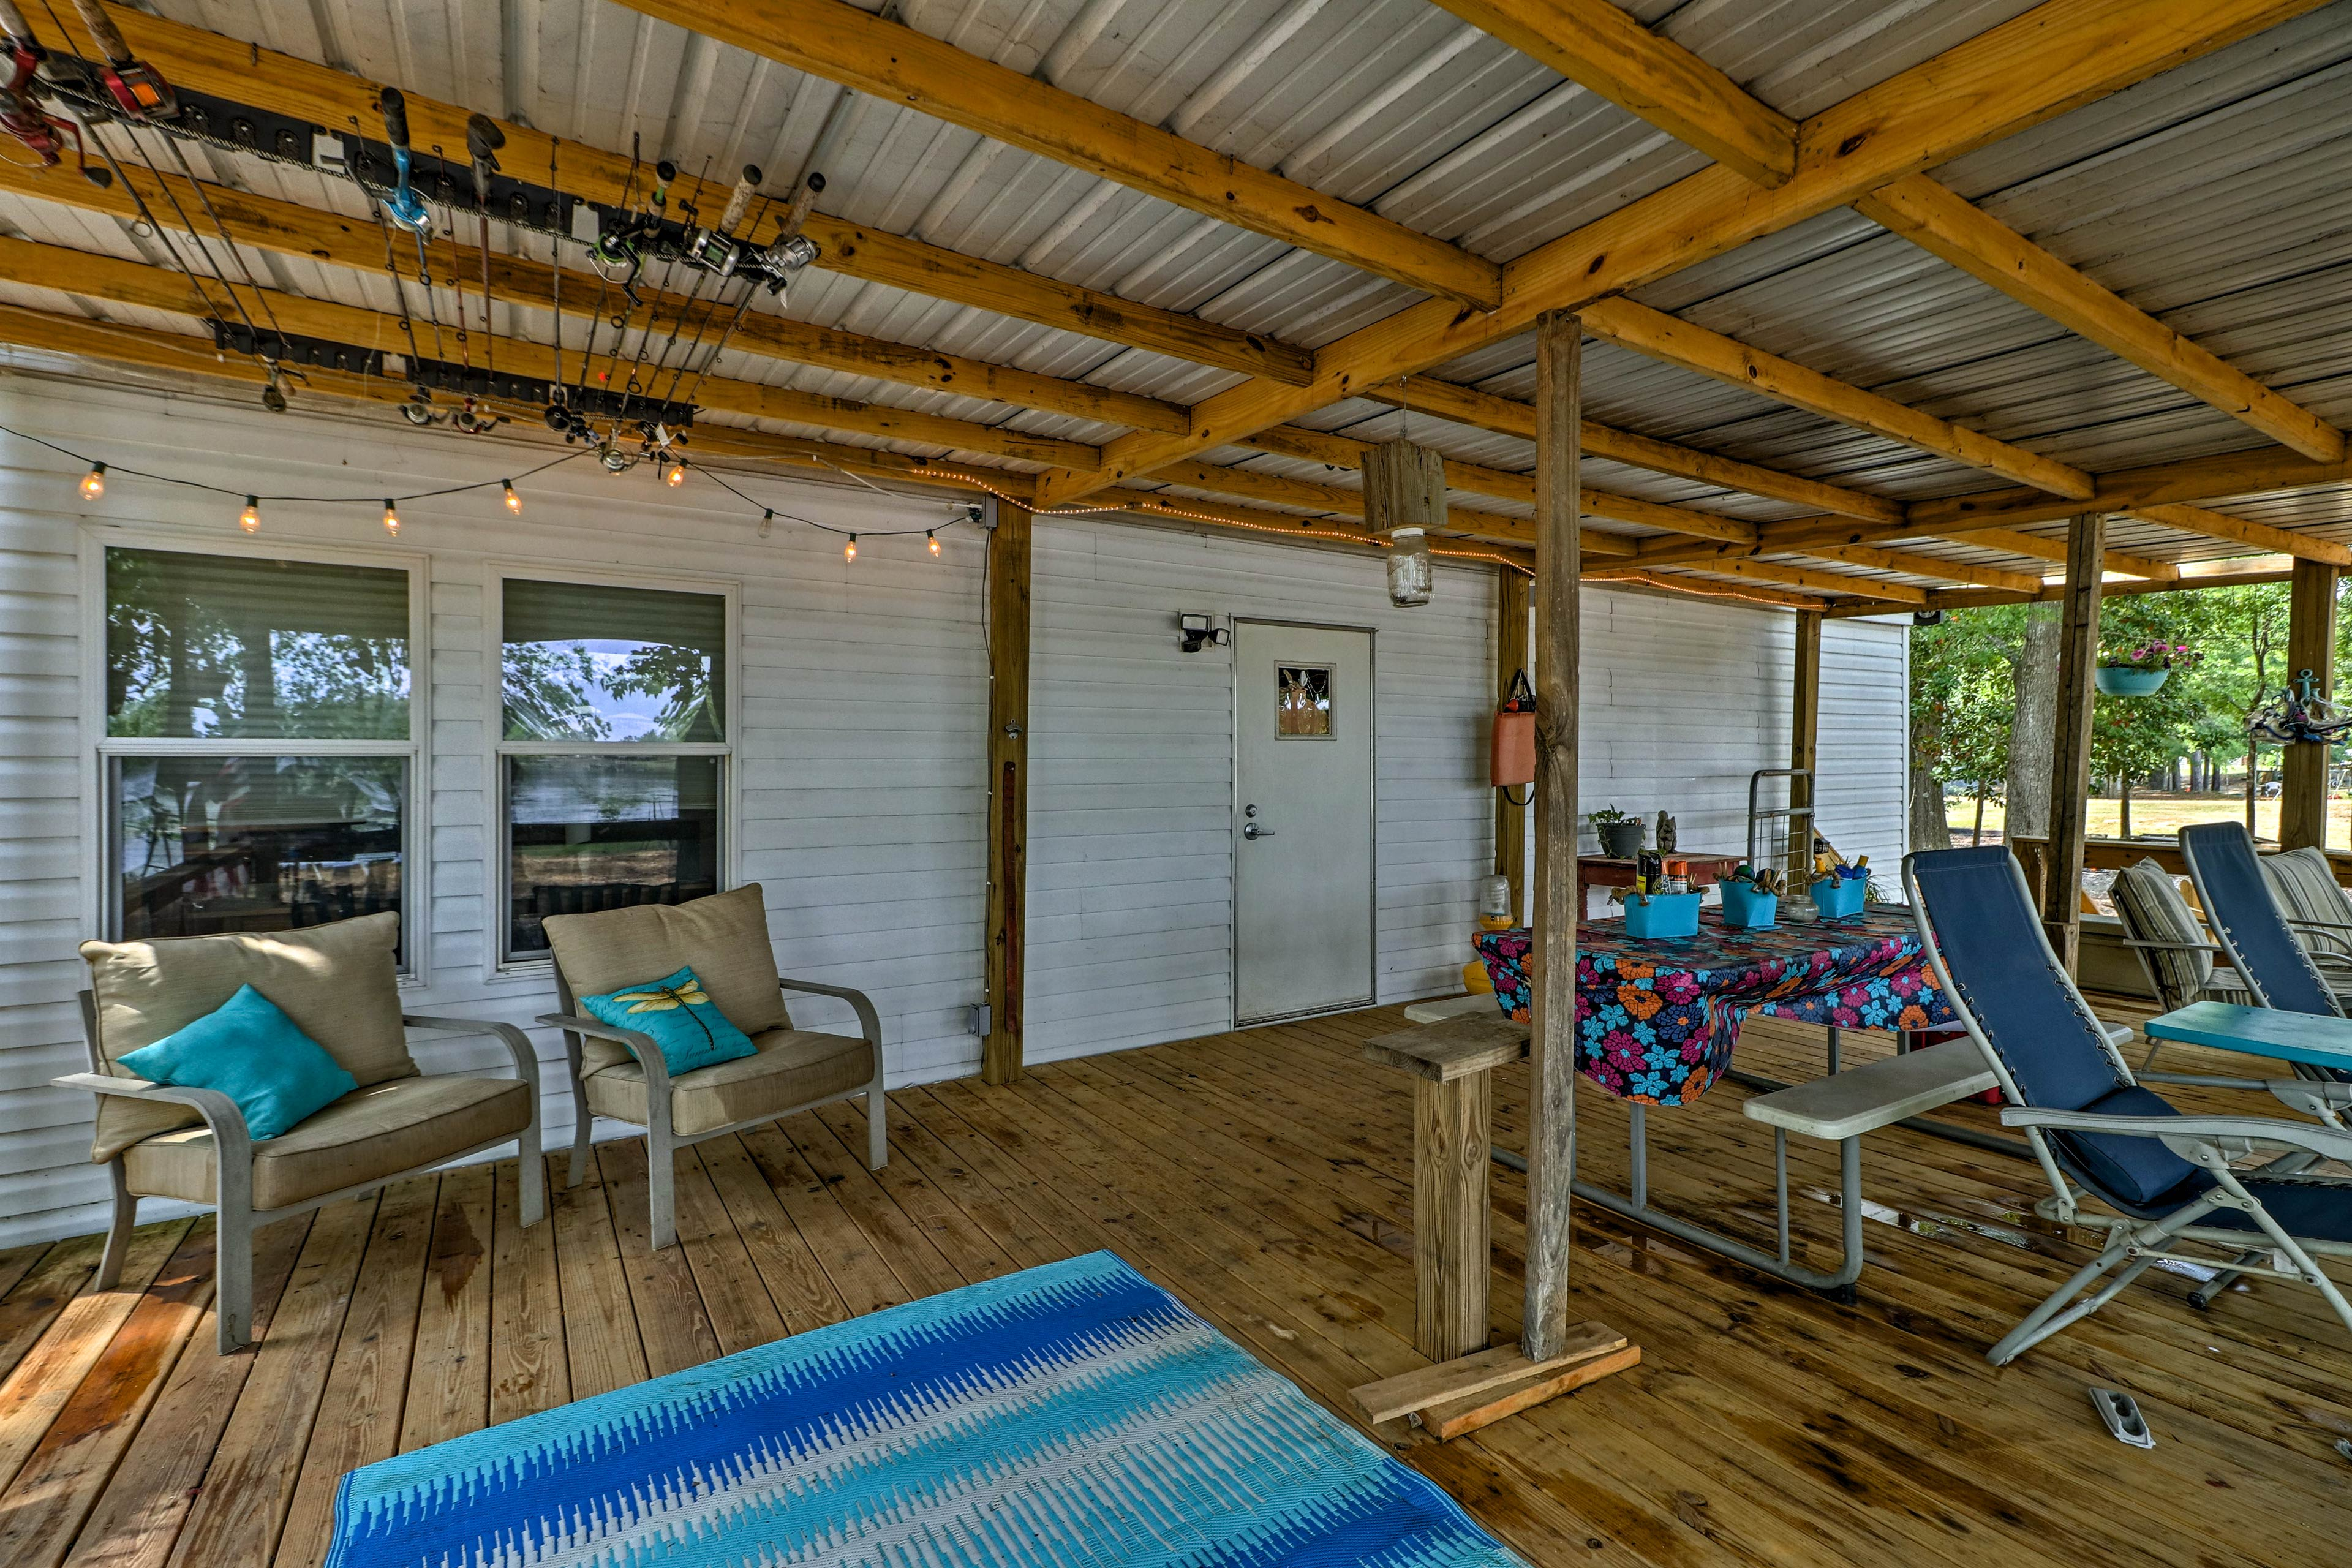 Spend mornings and evenings relaxing on the covered porch!